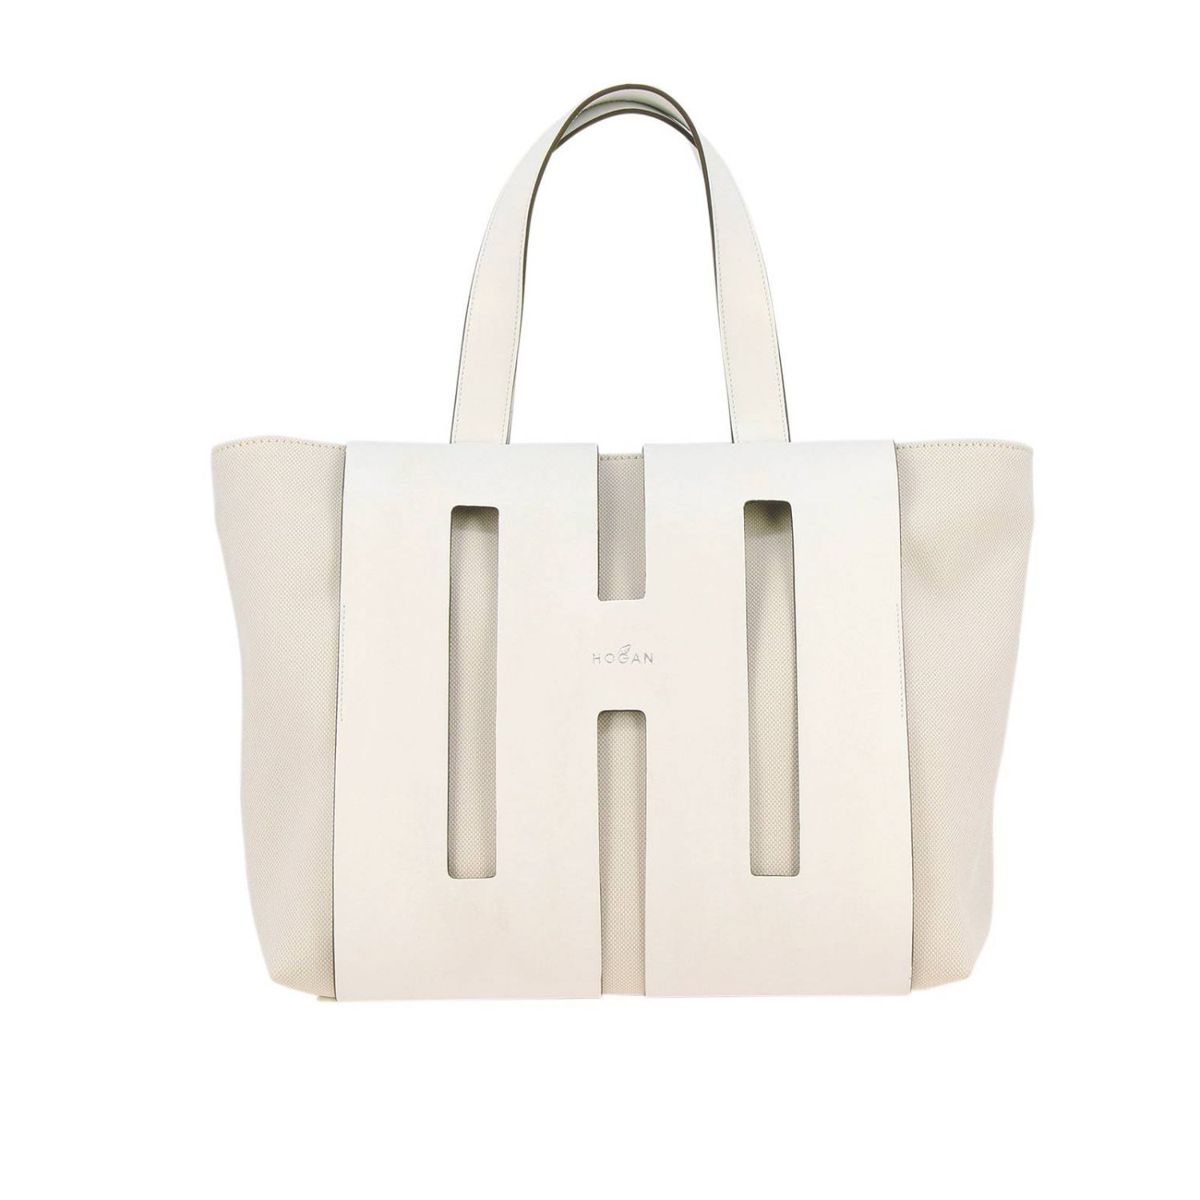 742eb6de8b4761 Borsa Shopping medium Bianco Hogan ...